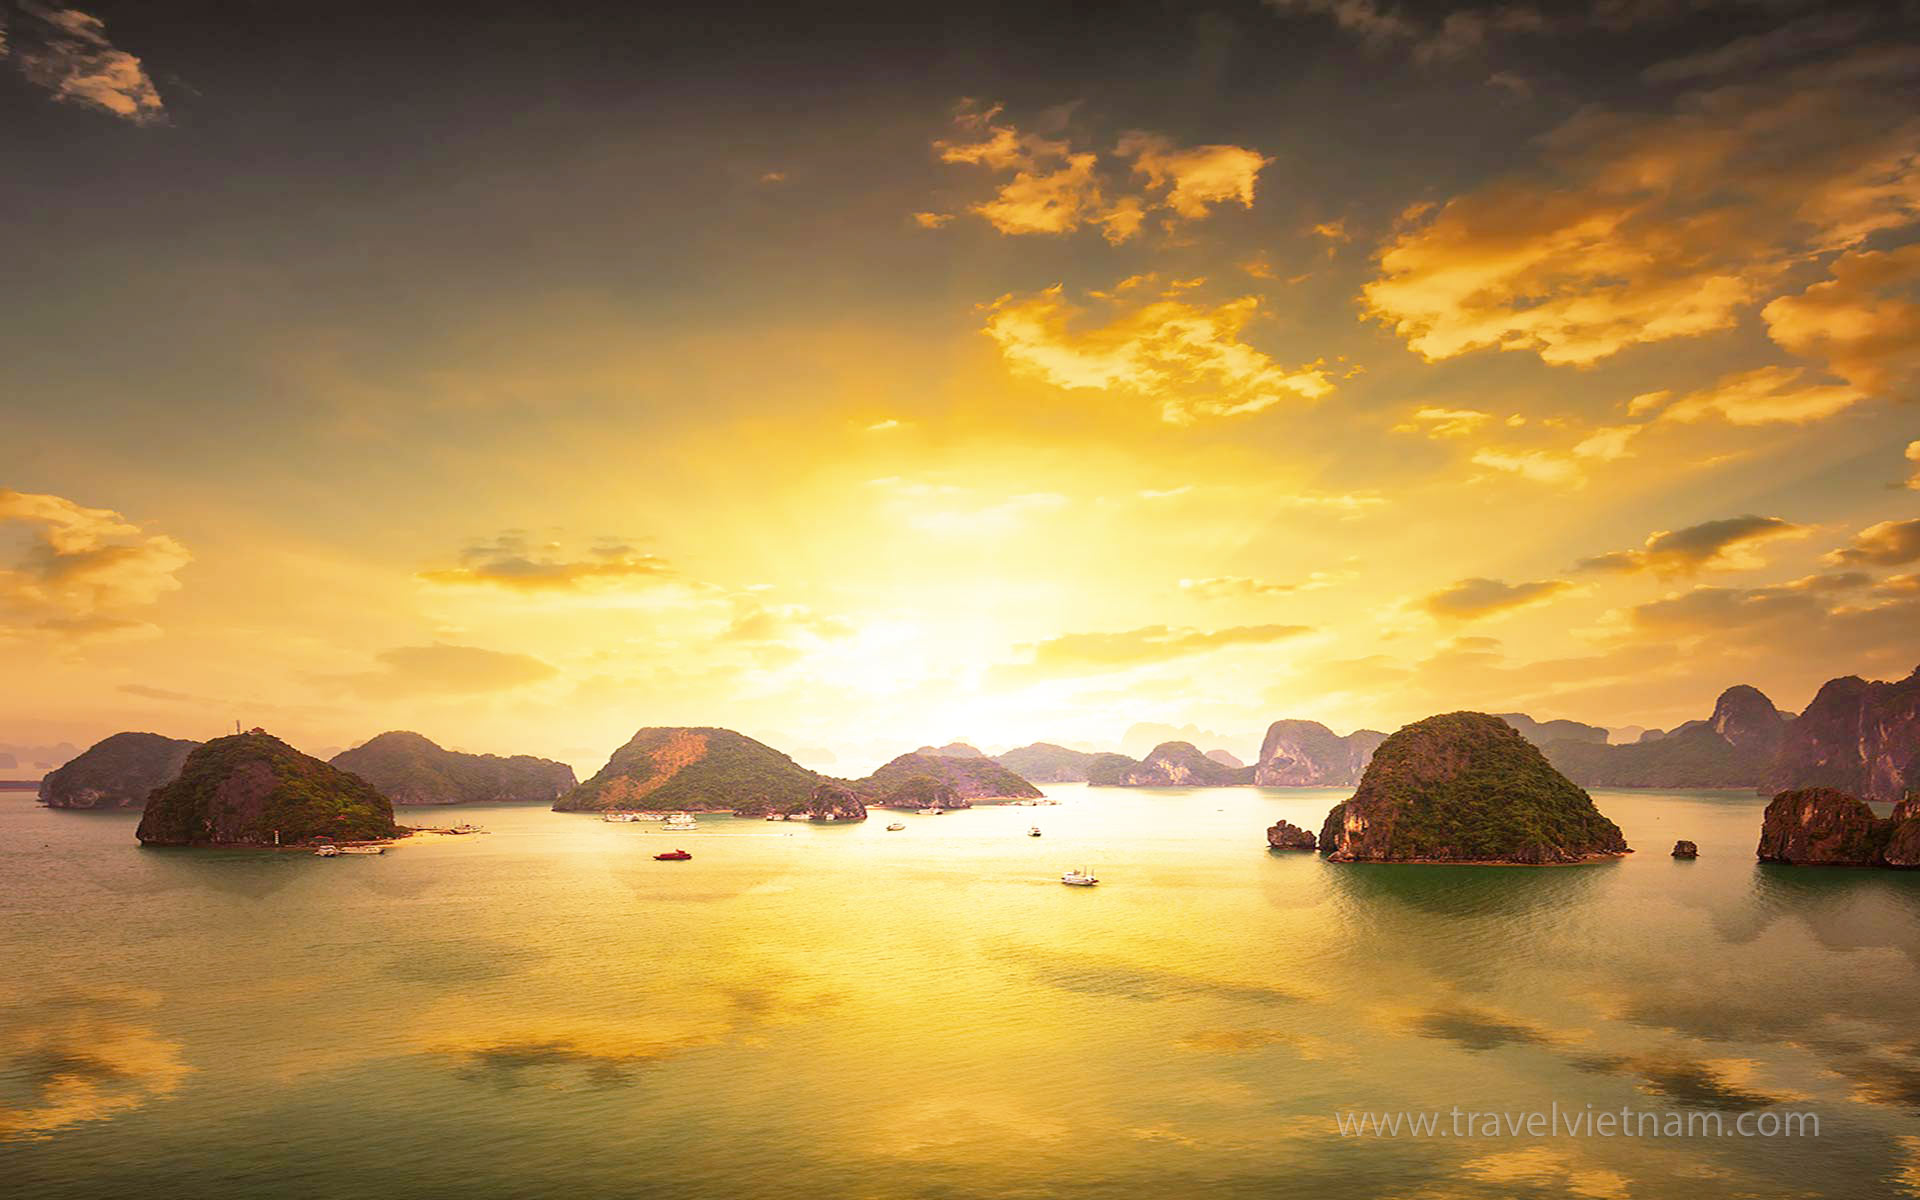 Halong Bay, Vietnam: General information